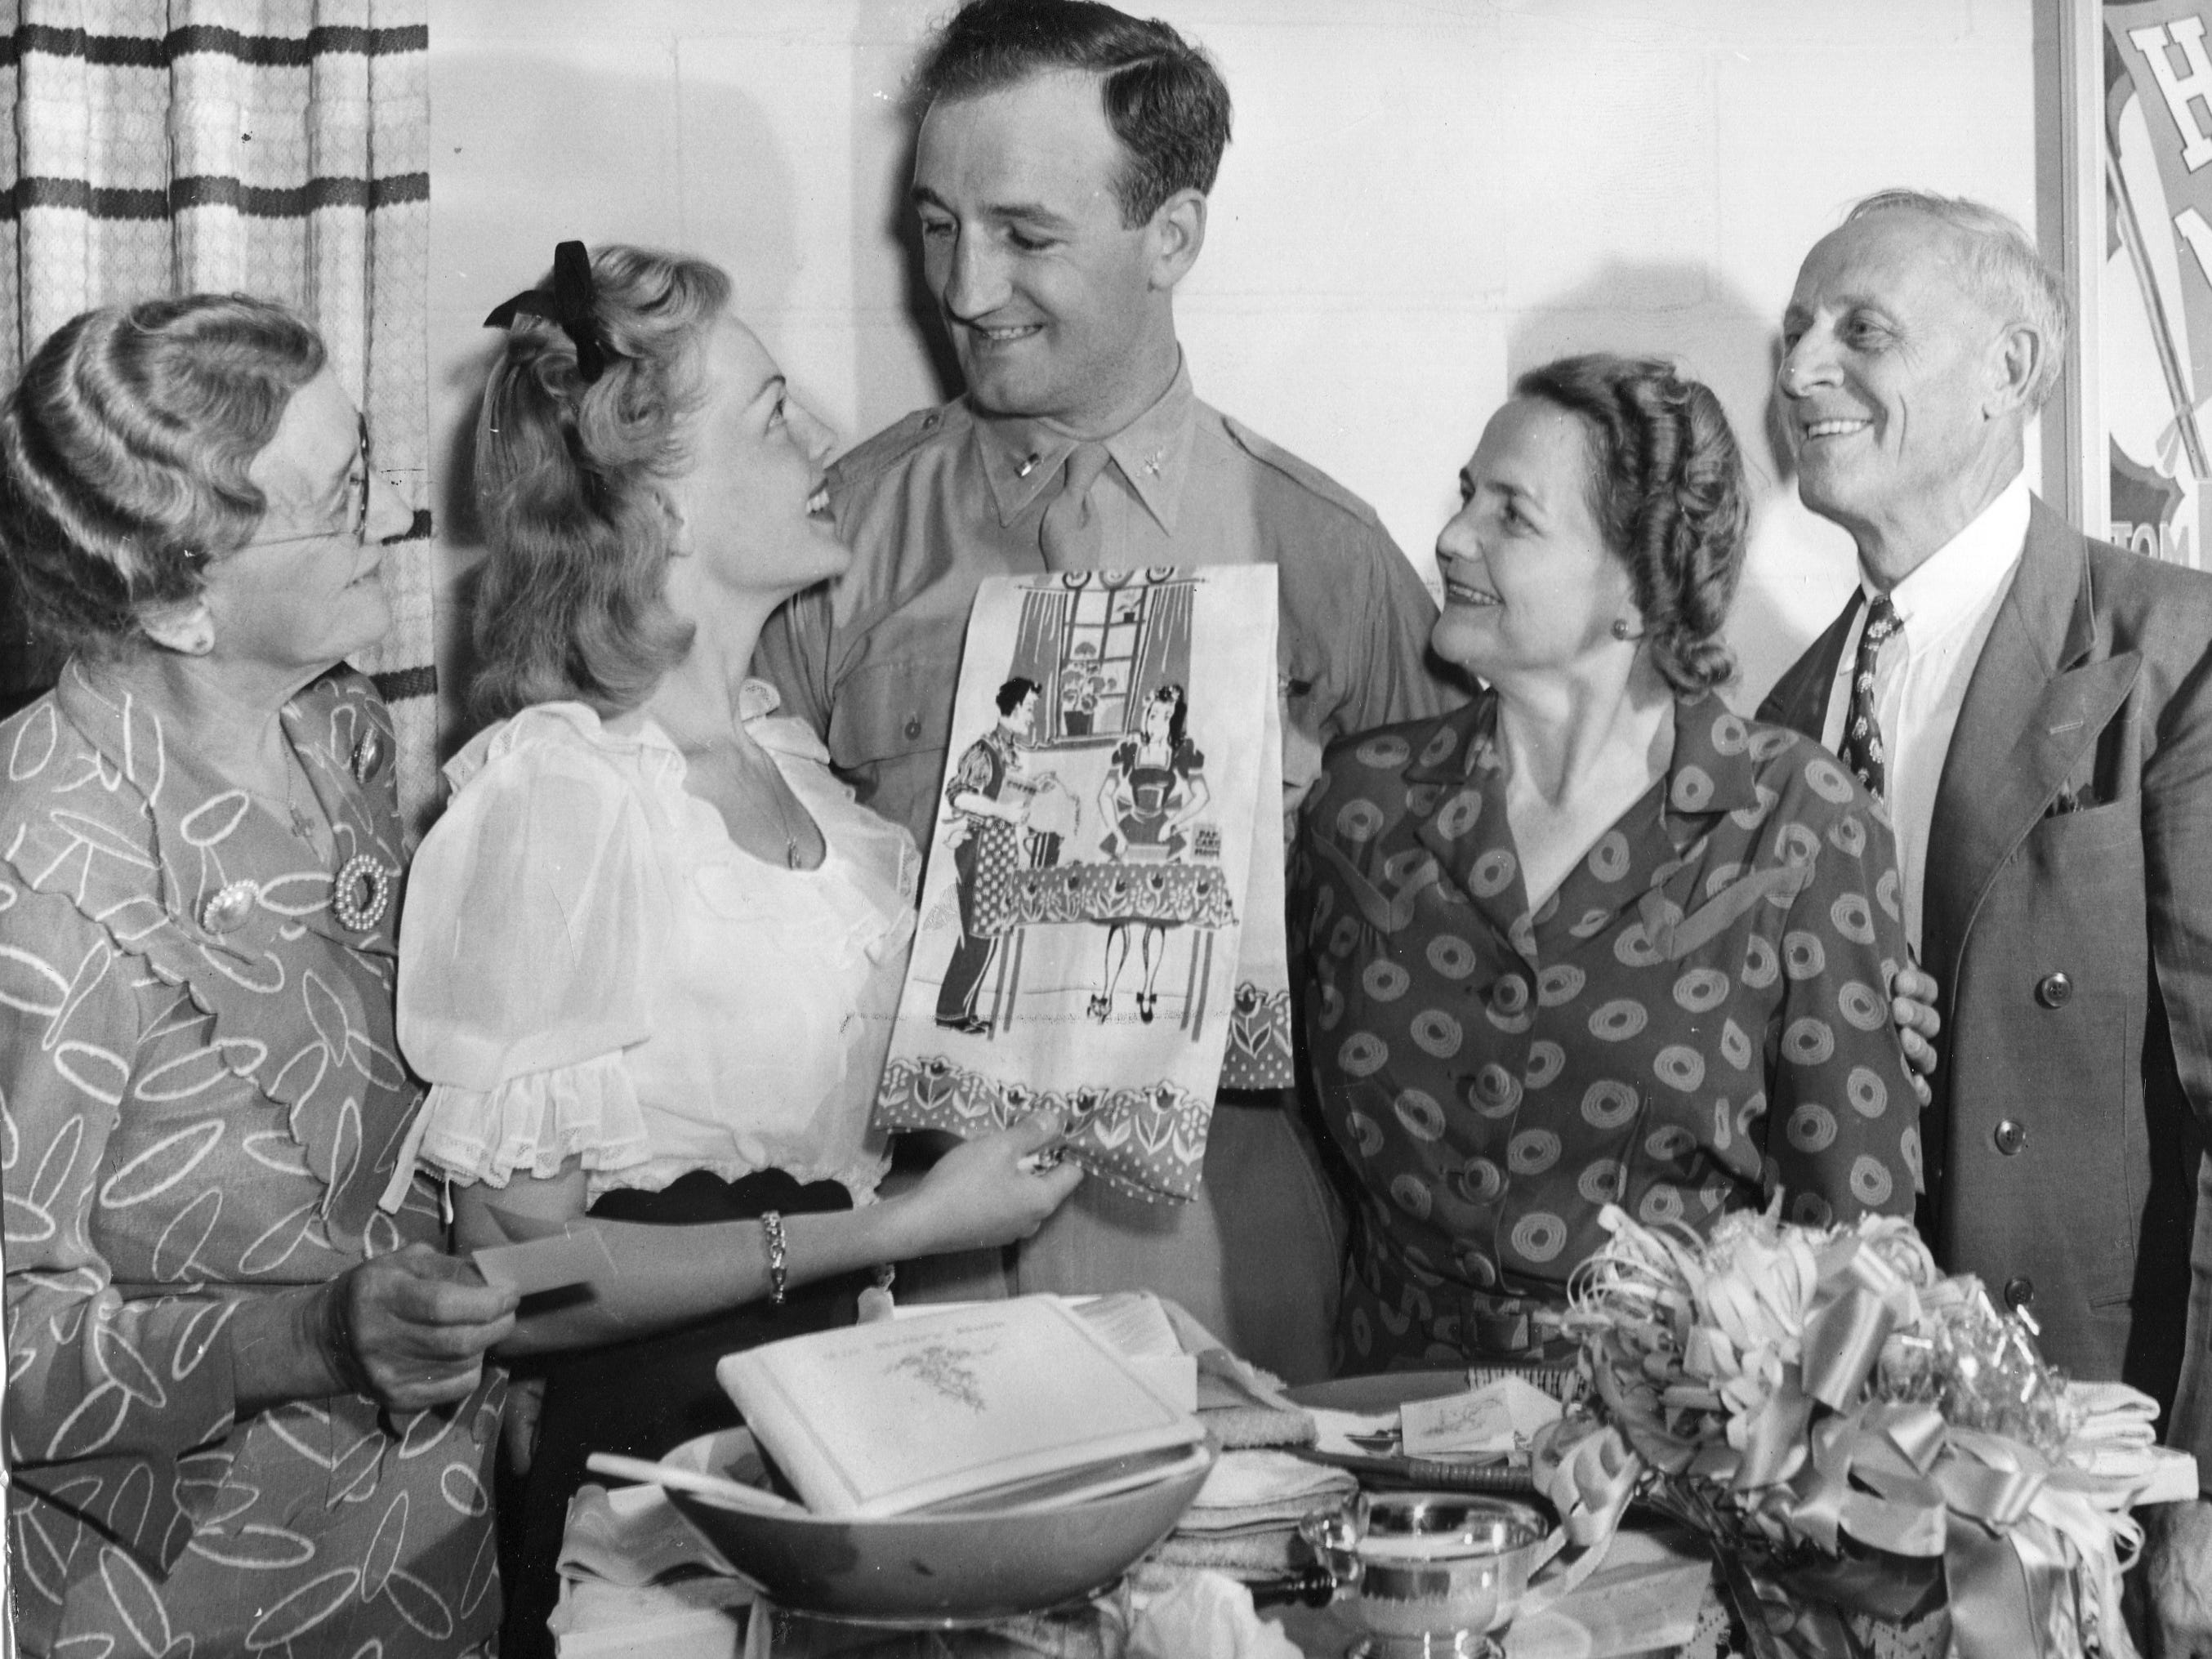 Tom Harmon, the former Heisman Trophy winner at the University of Michigan,  opens wedding shower gifts with his fiancé Elyse Knox in 1944.  Harmon was a pilot in World War II, surviving a crash in South America and then being shot down over China.